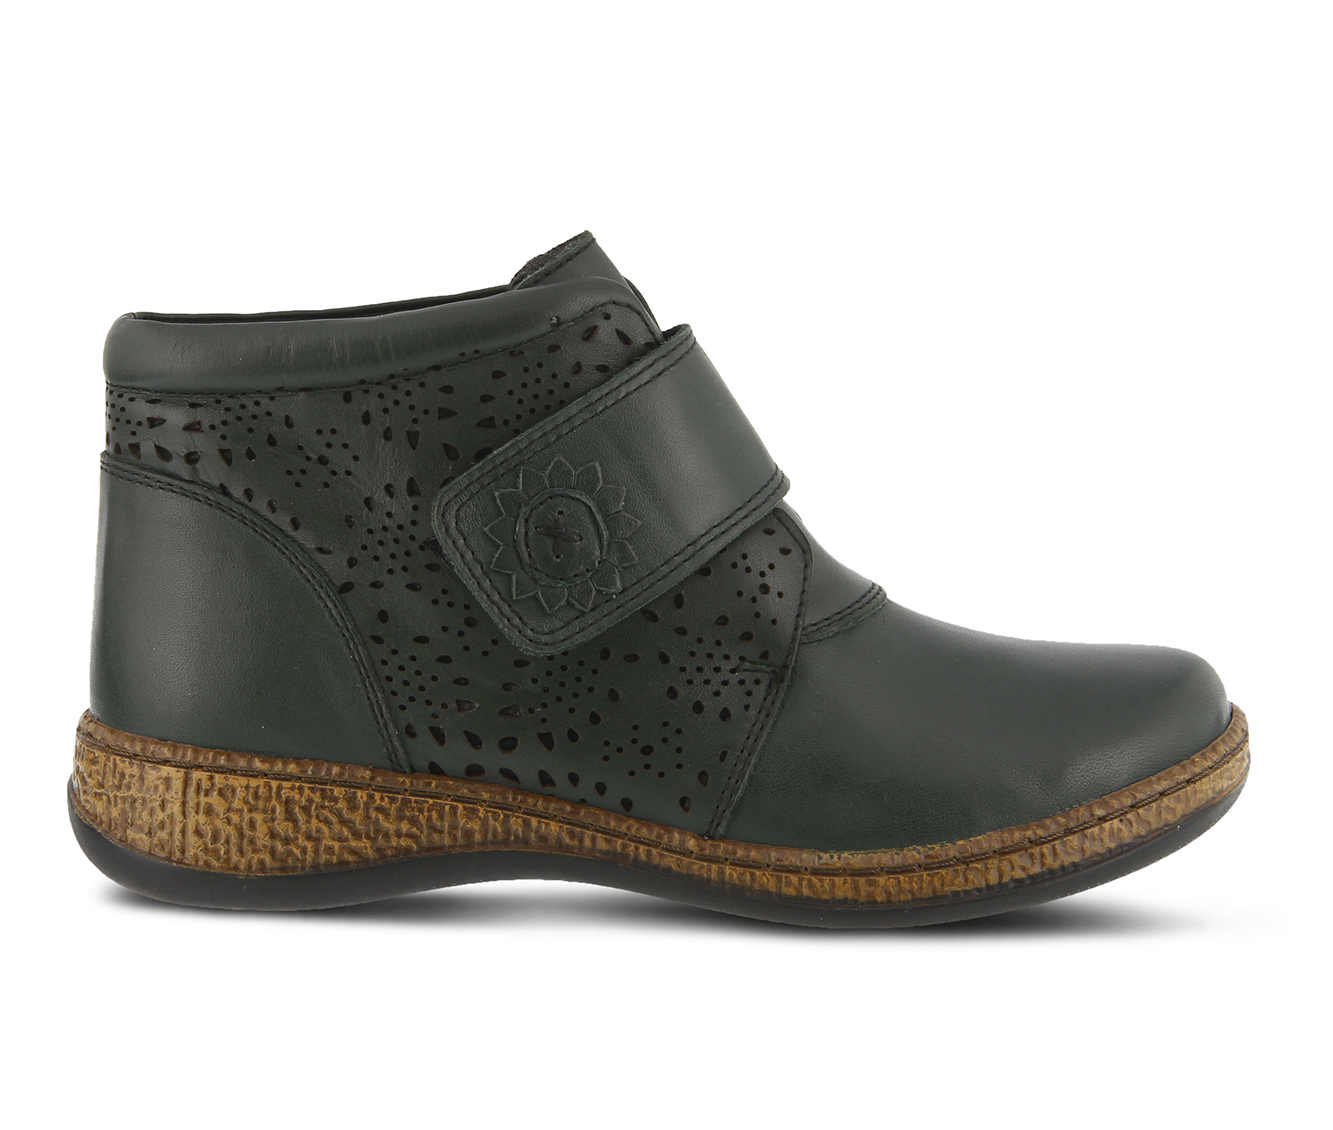 SPRING STEP Souzala Women's Boots (Green Leather)